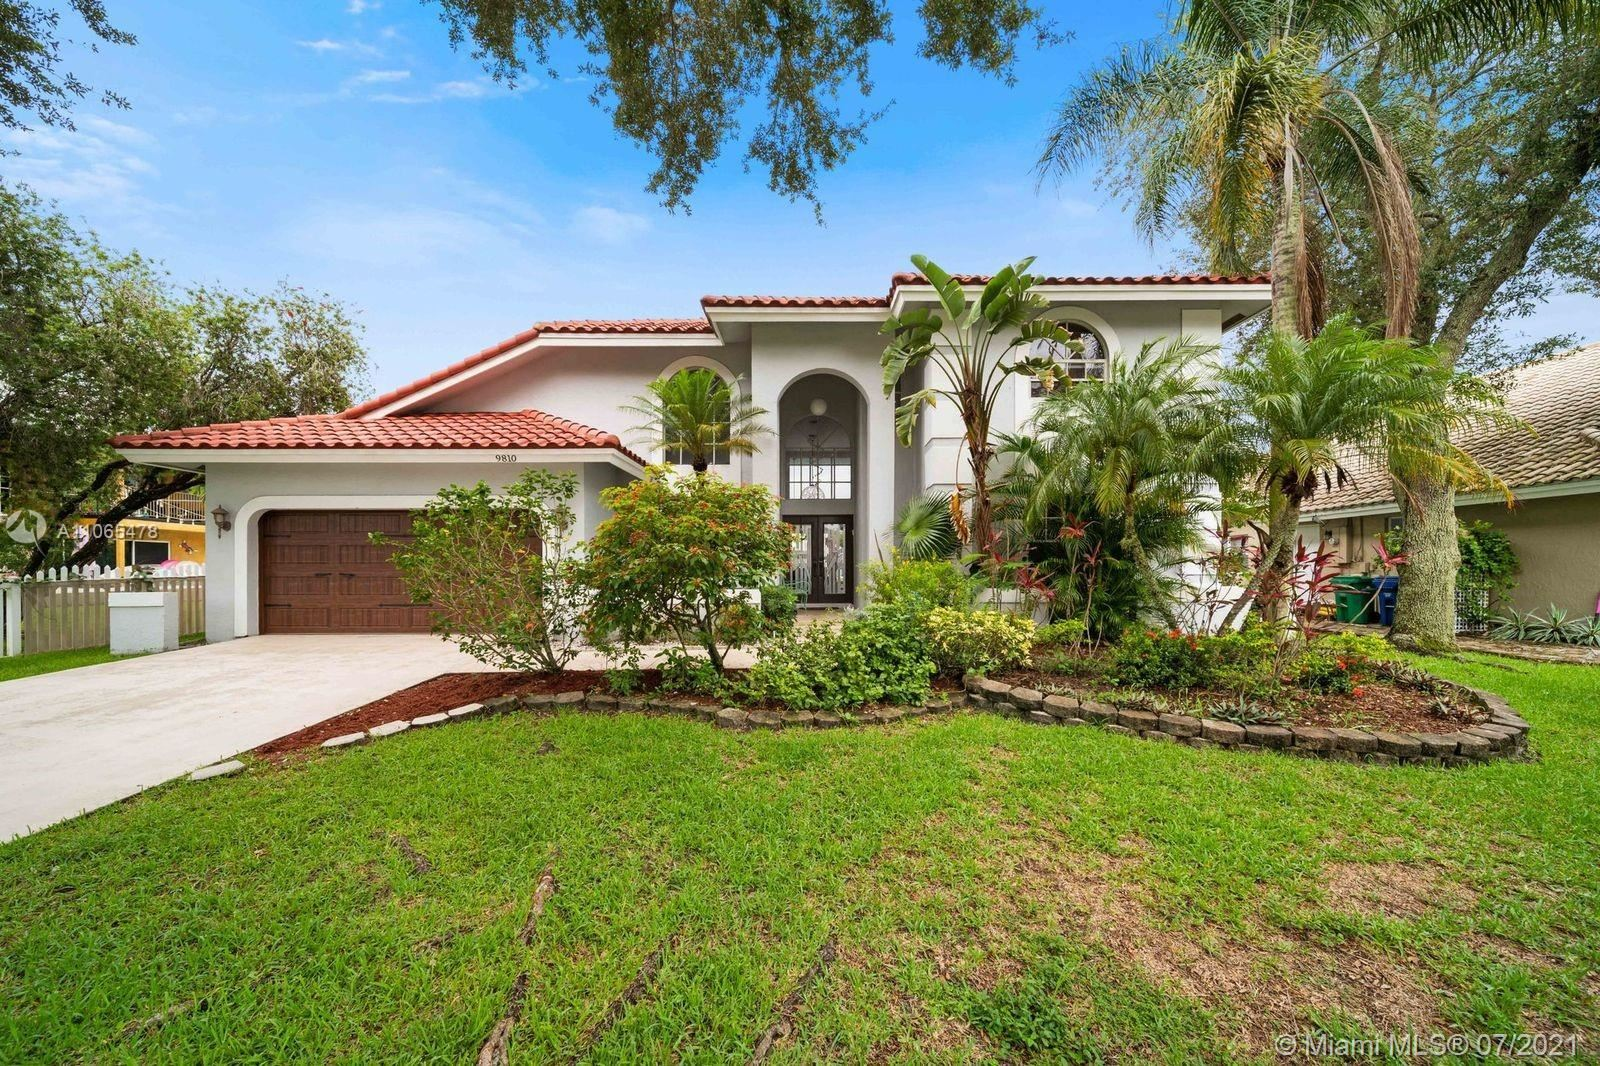 9810 NW 49th Pl, Coral Springs, FL 33076 - #: A11065478